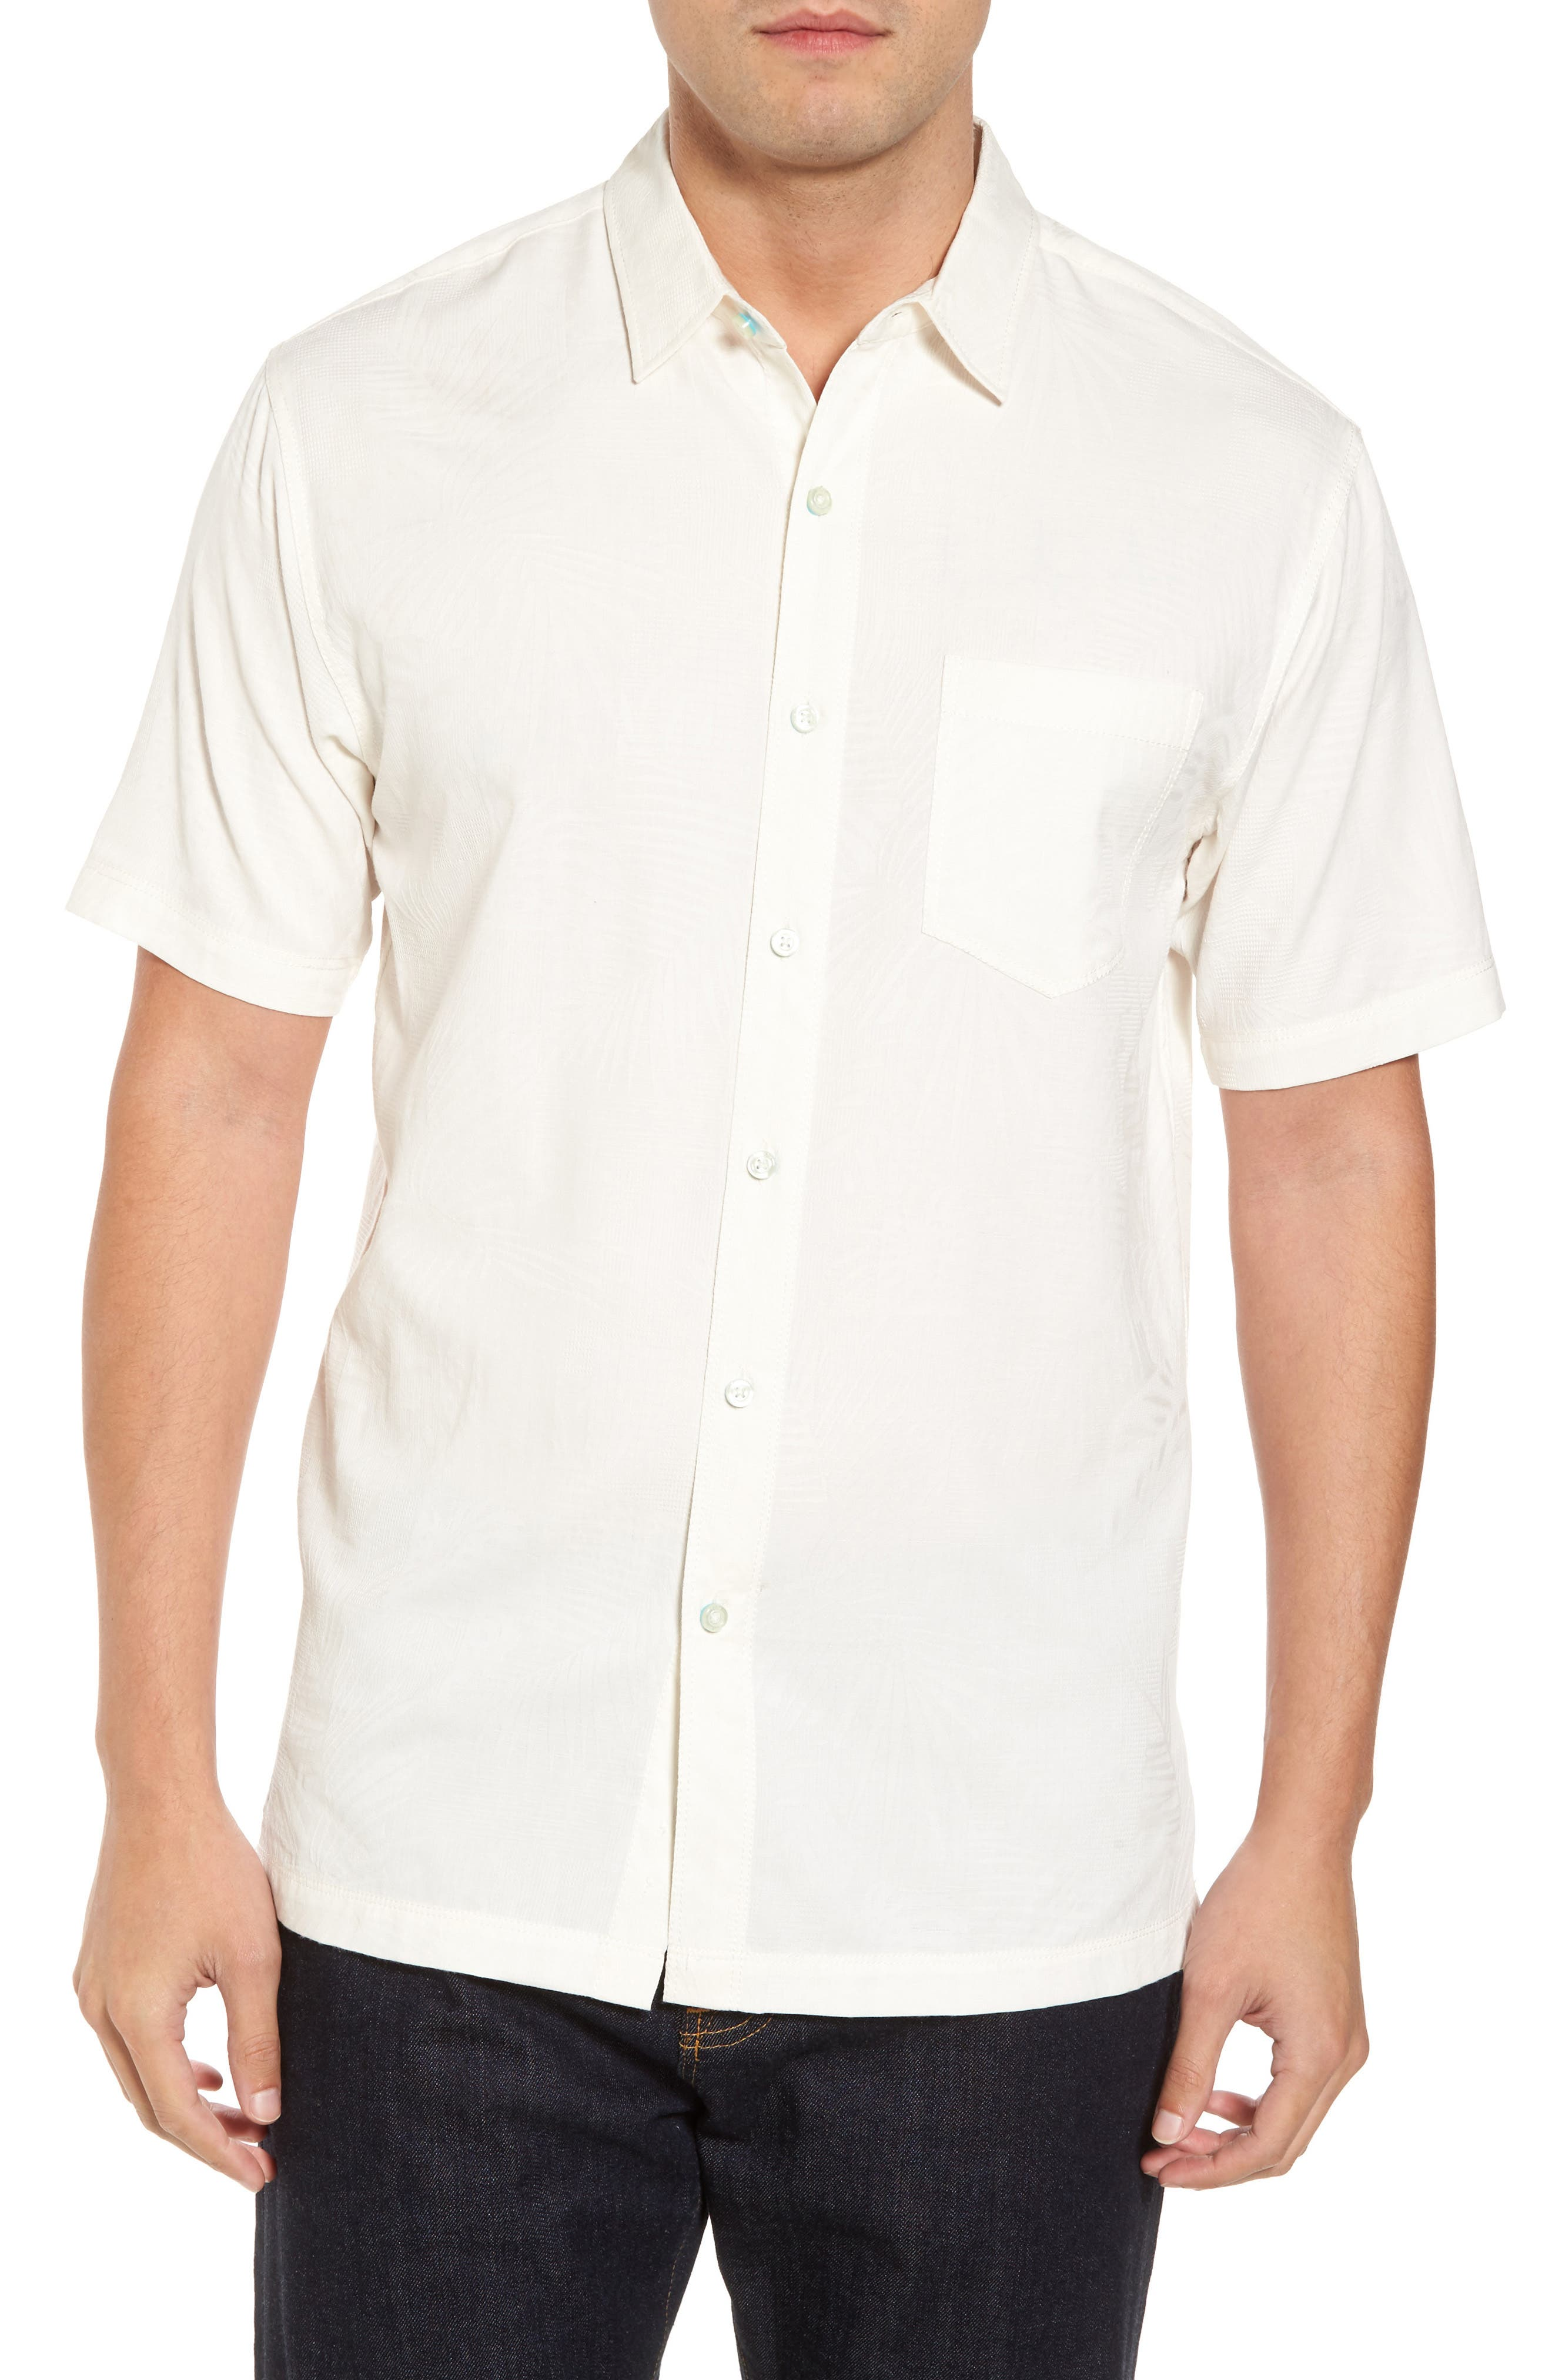 Milagro Classic Fit Sport Shirt,                         Main,                         color, Eggshell